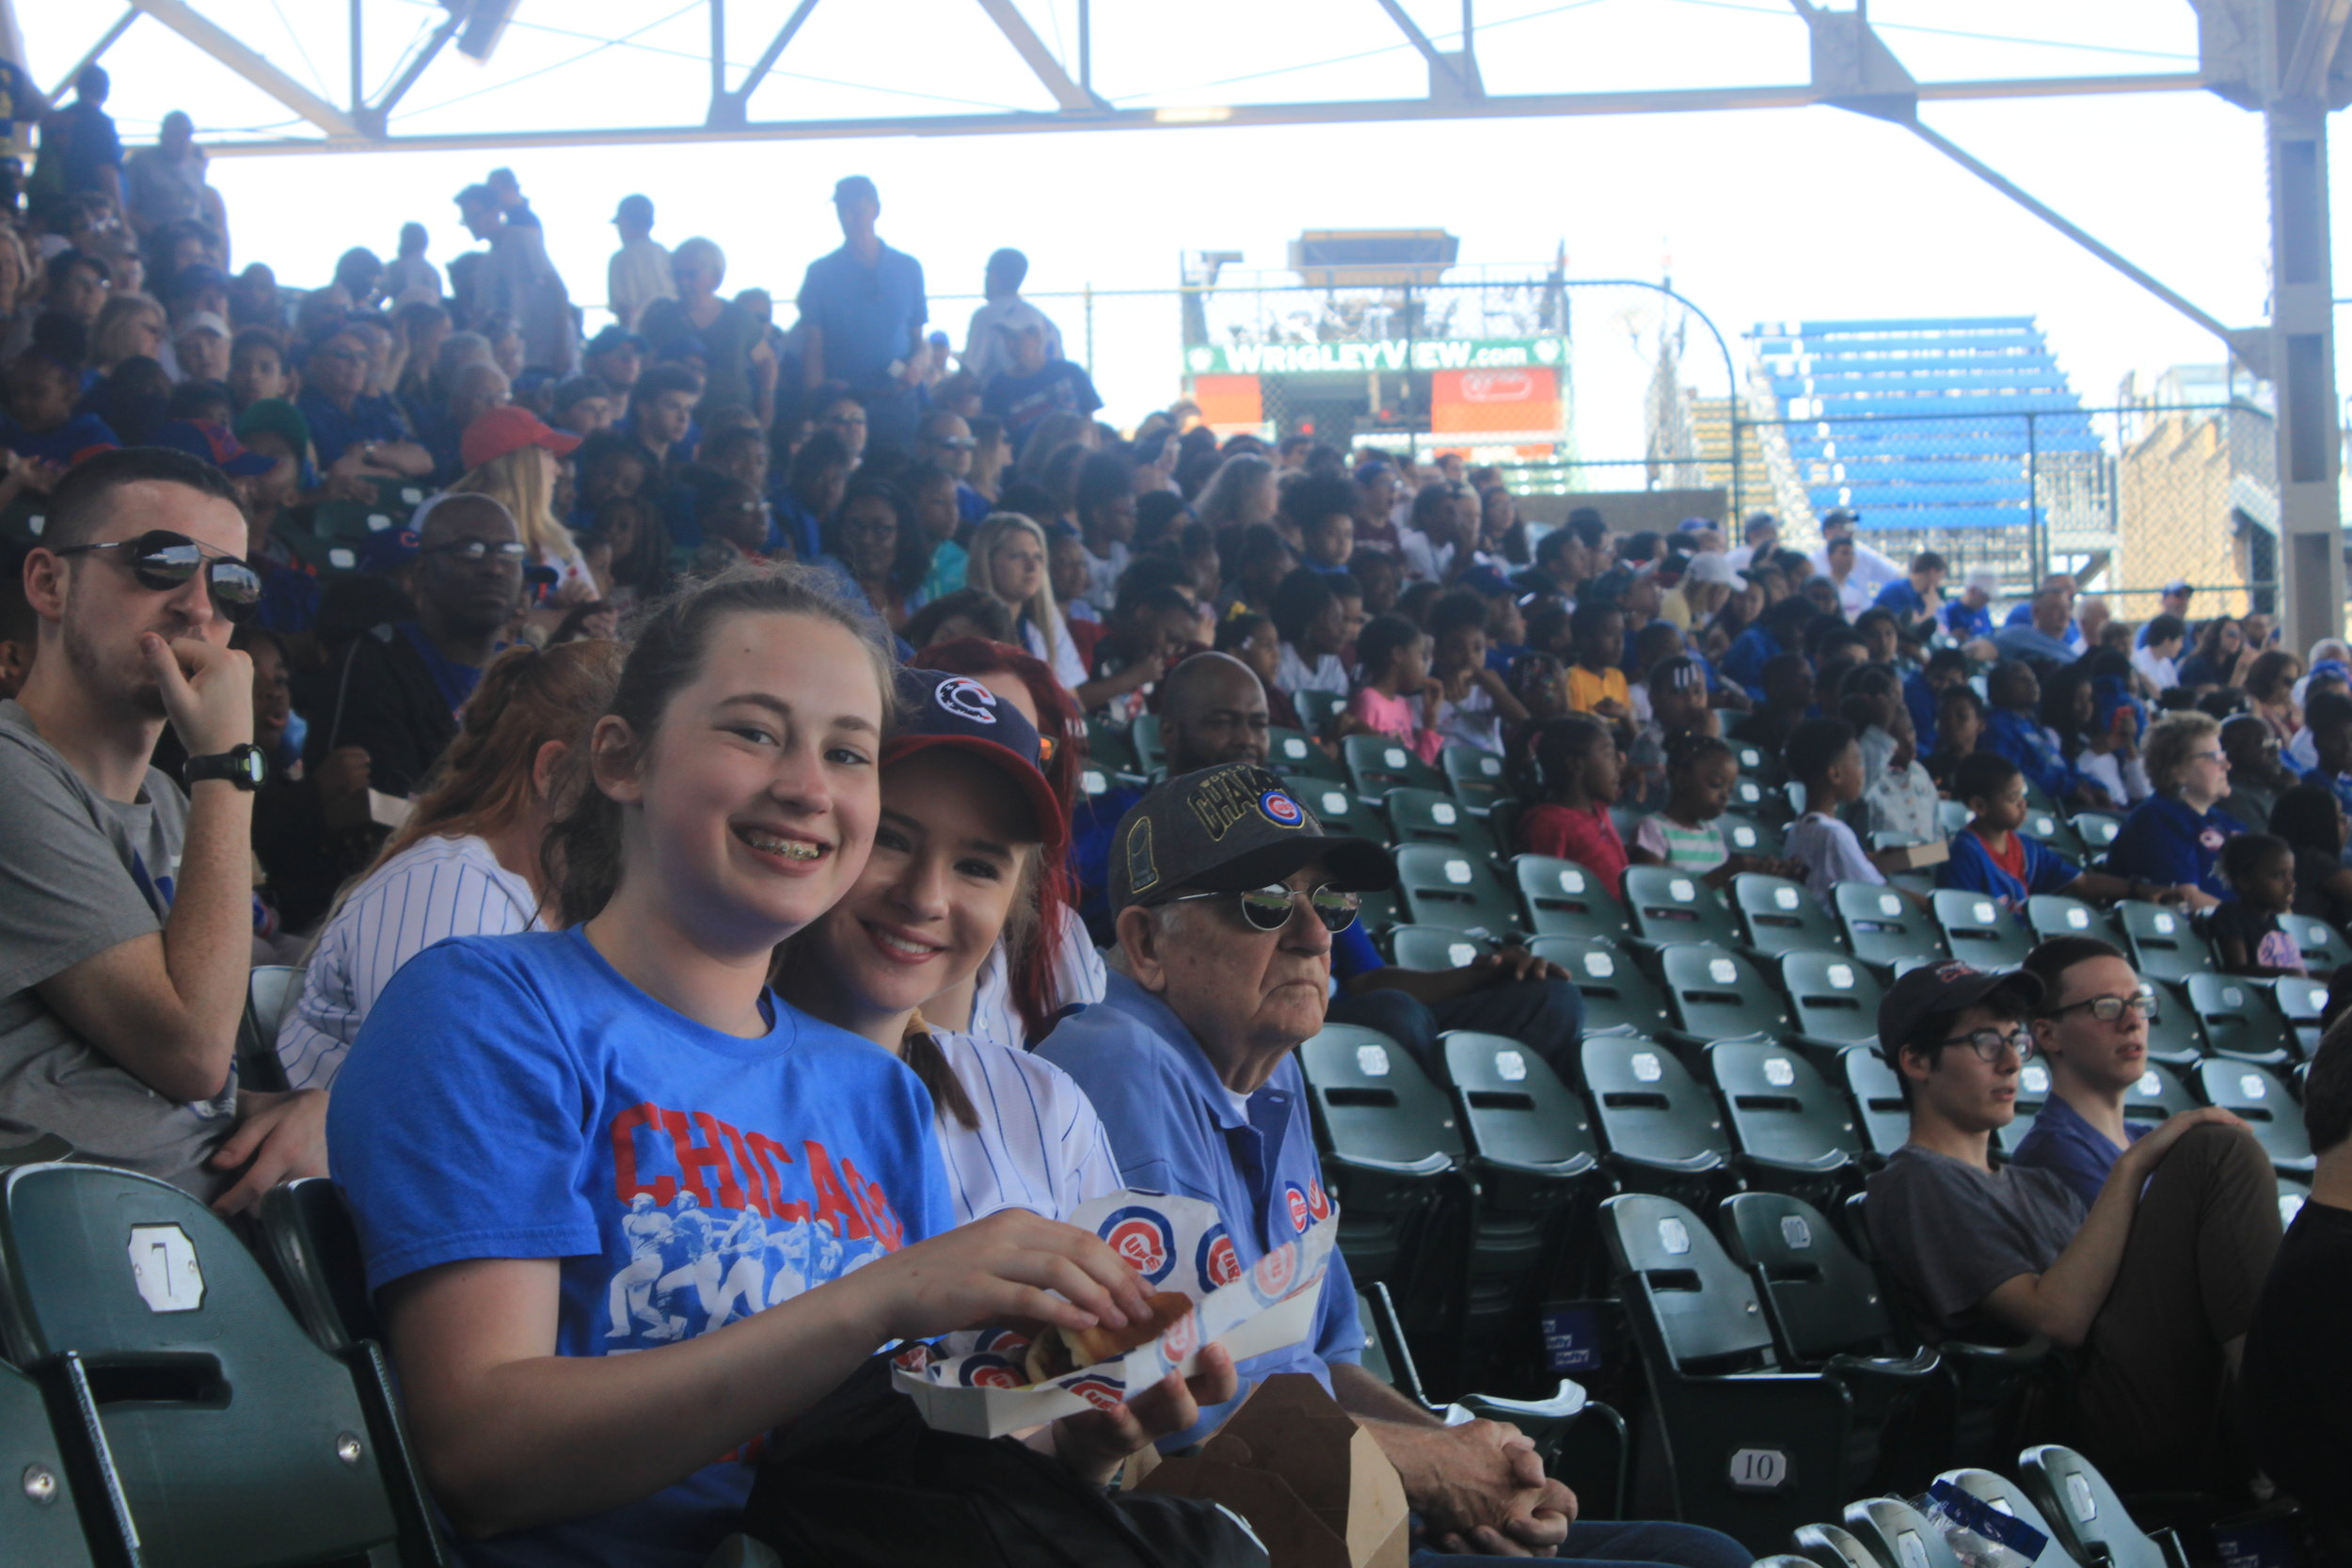 The Northside Section is all smiles at Wrigley.